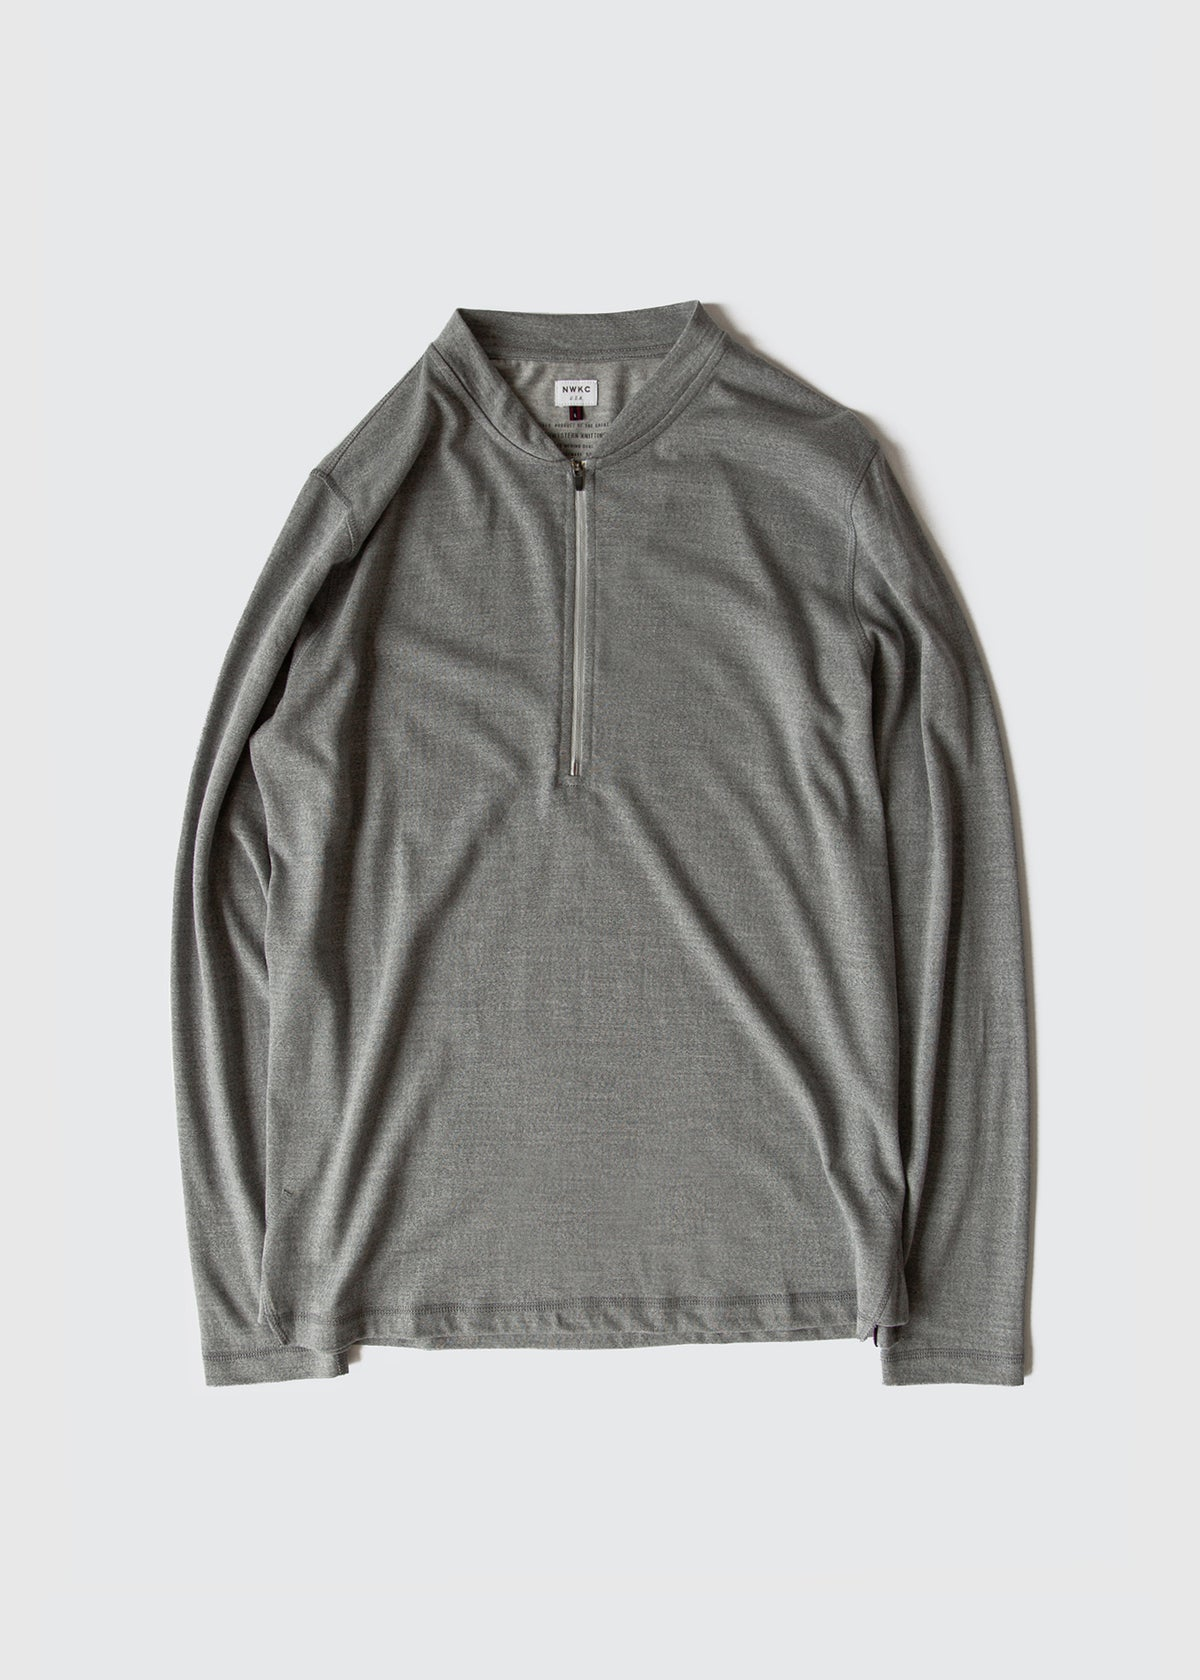 106 - 1/3 ZIP VARSITY - GRAY - Wilson & Willy's - MPLS Neighbor Goods